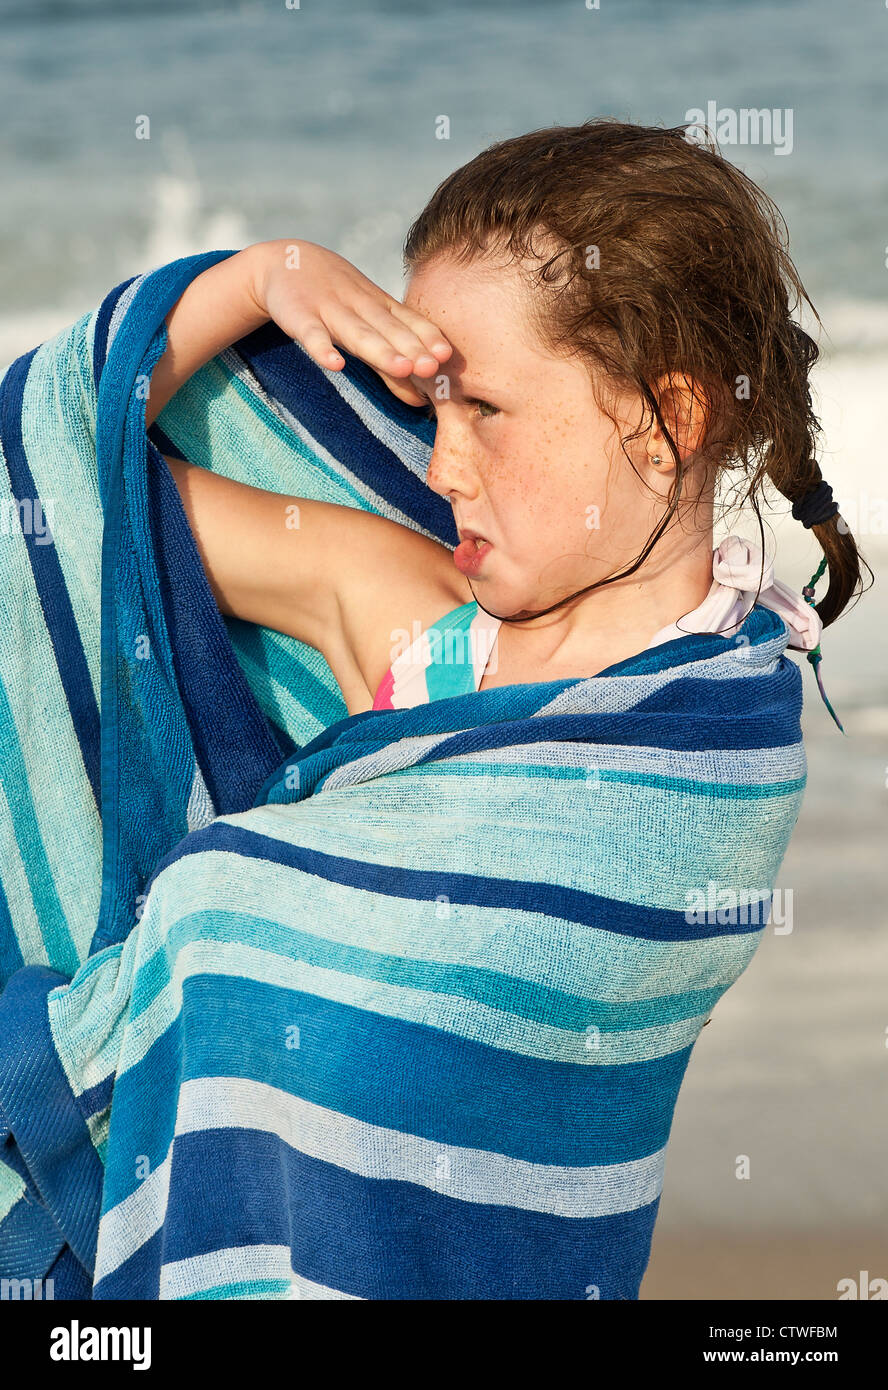 Cute young girl drying off with a beach towel, Cape Cod, MA - Stock Image